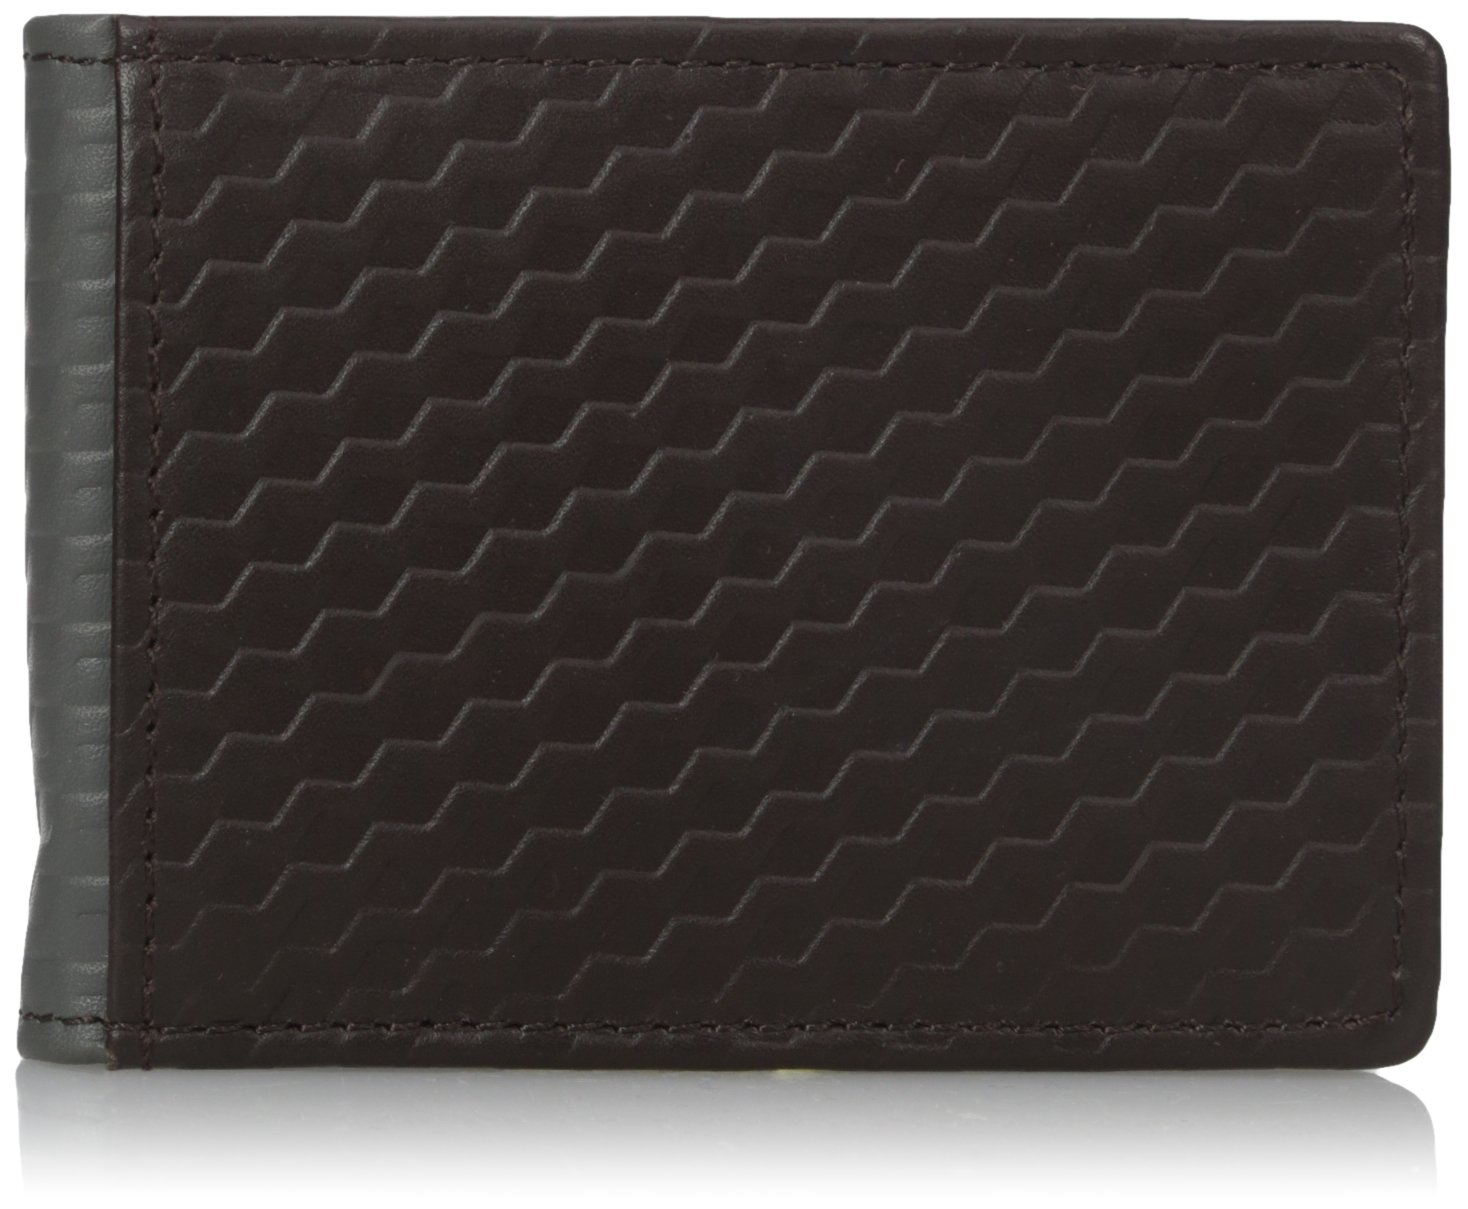 Buxton Men's Bellamy RFID Blocking Leather Front Pocket Slim Flip Wallet with Money Clip, Tan, One Size